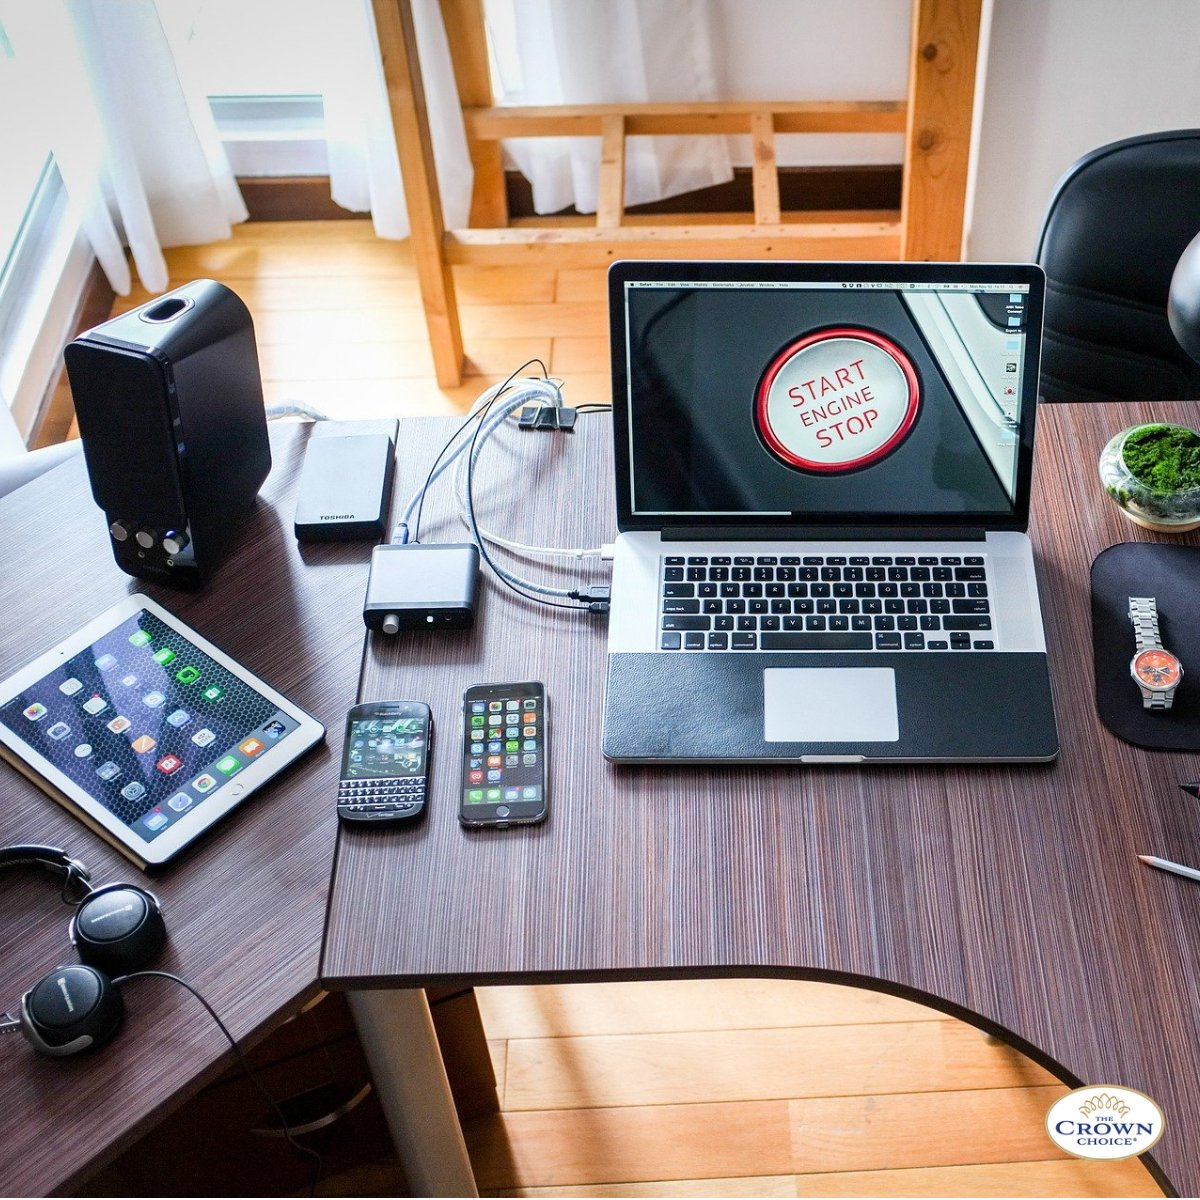 Cable Management Ideas and Easy Ways to Clean Your Desk